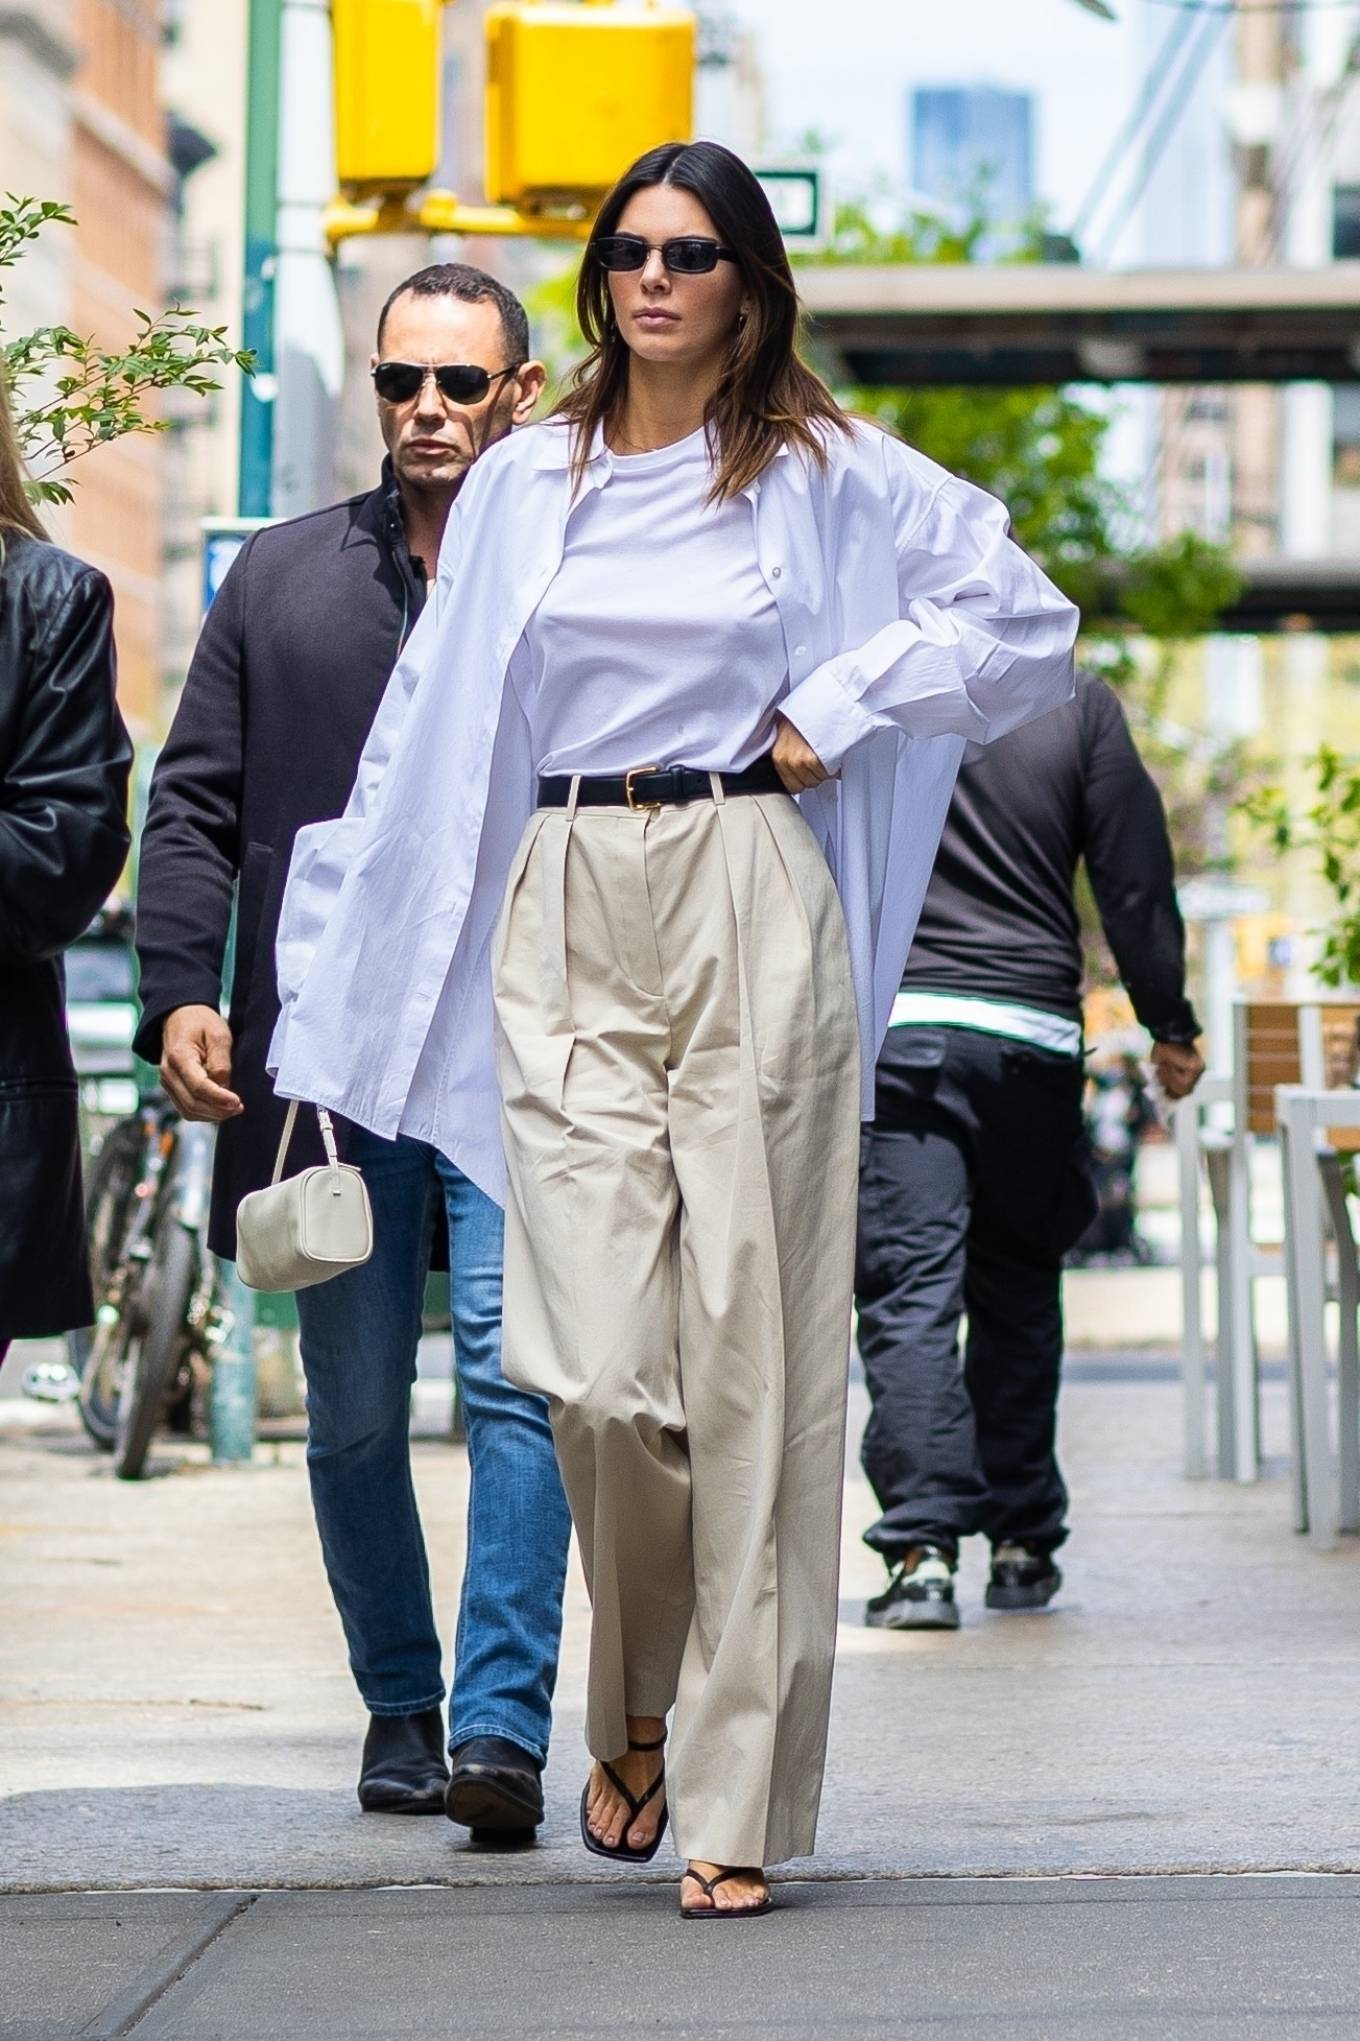 Kendall Jenner rocking a white cotton top with short sleeves and a crew neck